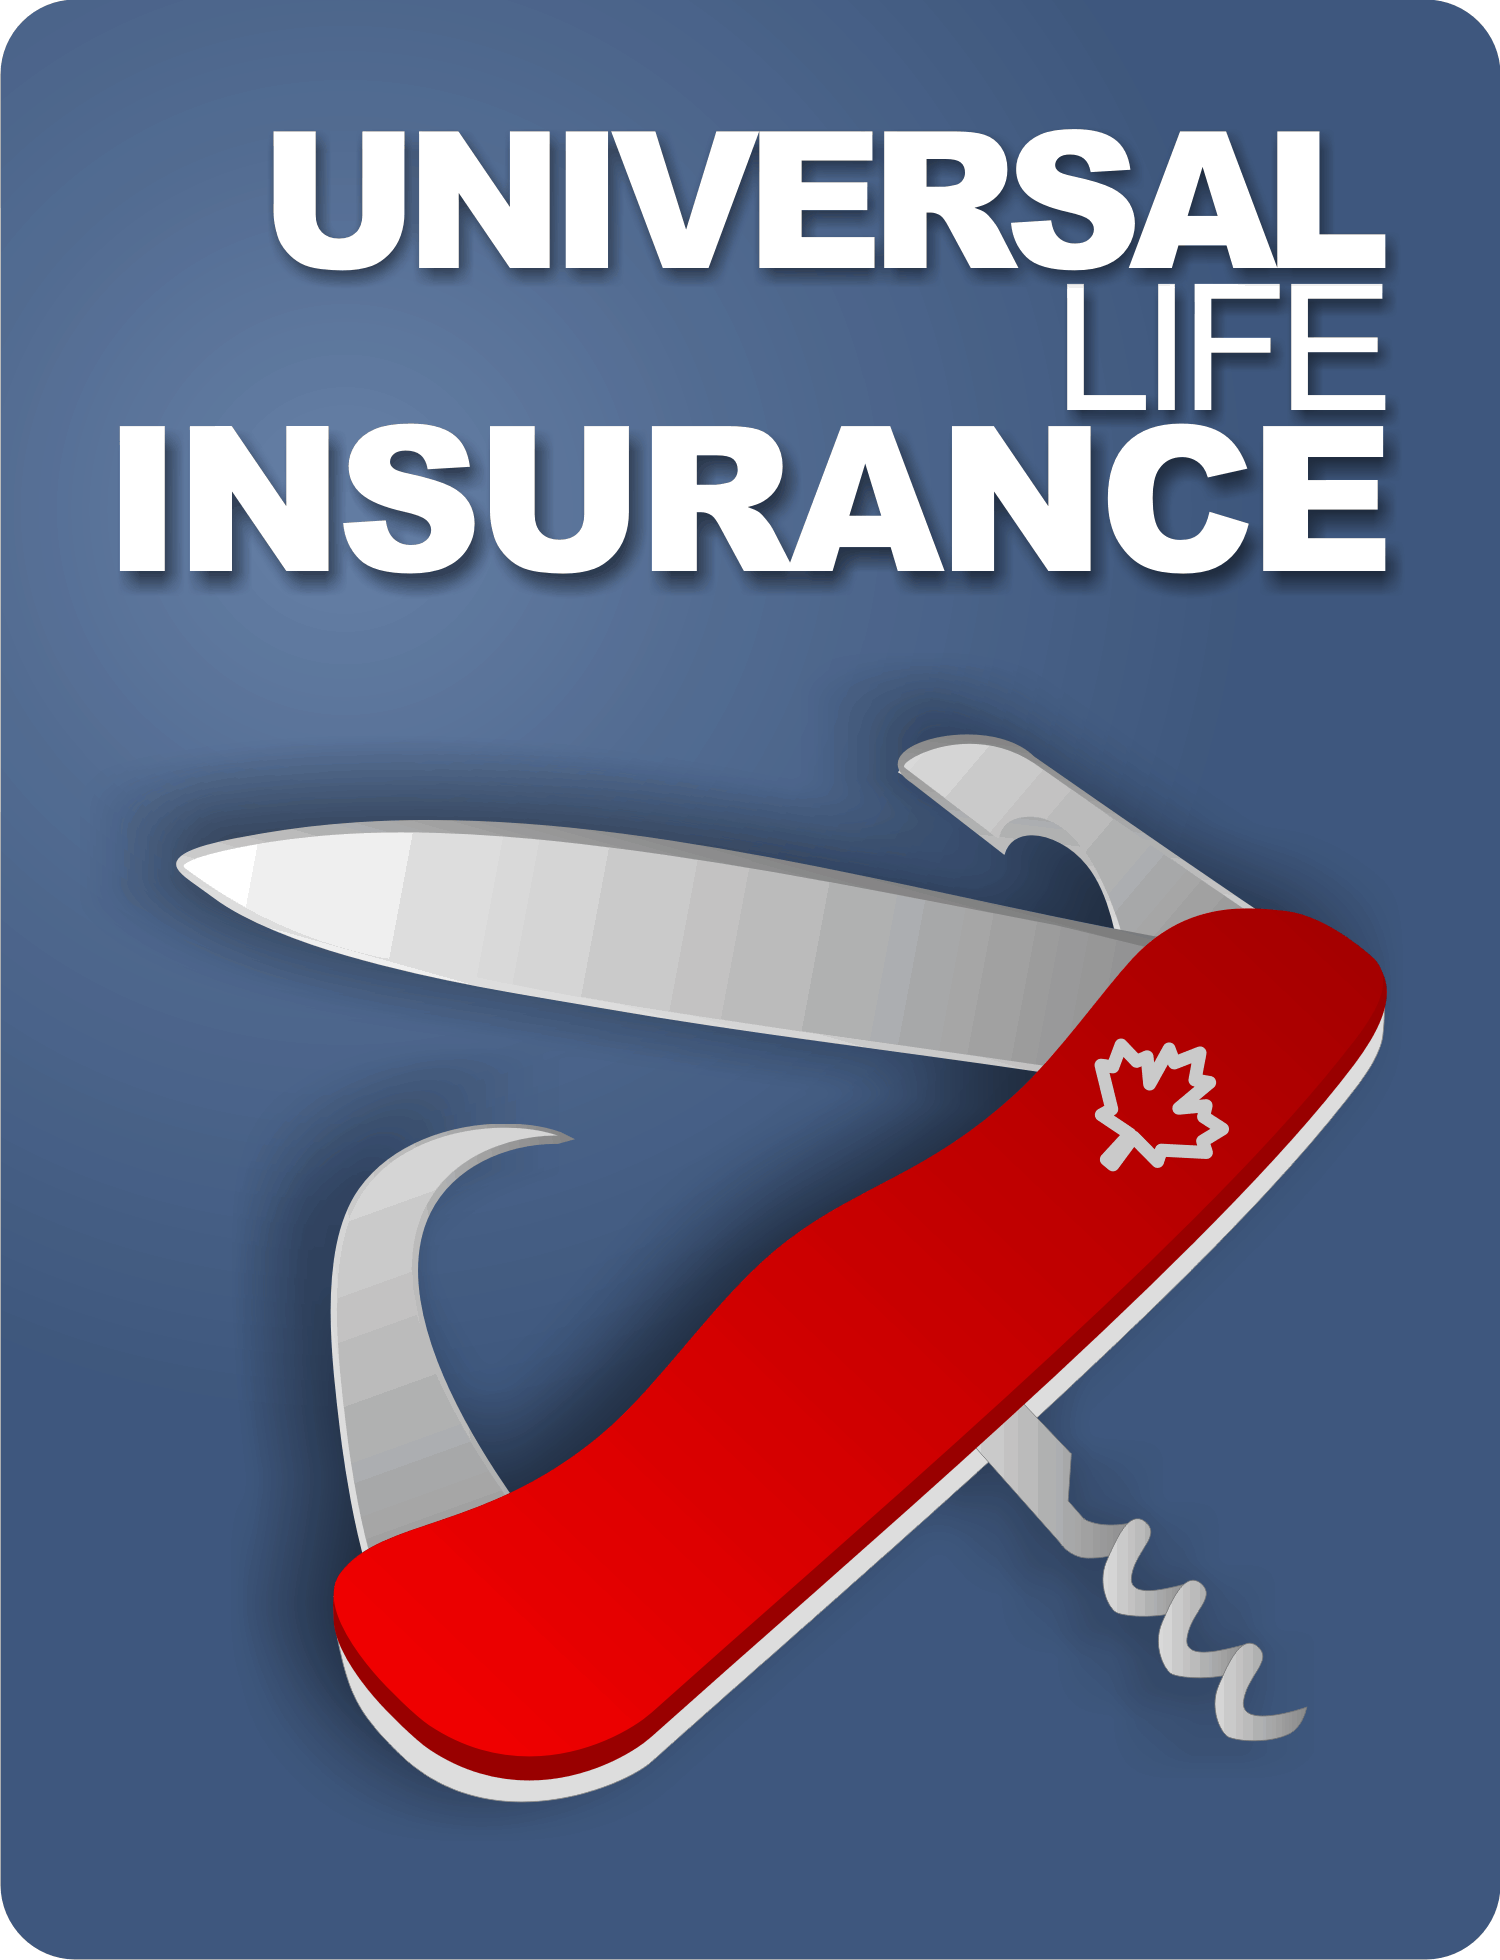 Cheap Whole Life Insurance Quotes Learn Index Universal Life Pros And Cons  Life Insurance Tips And